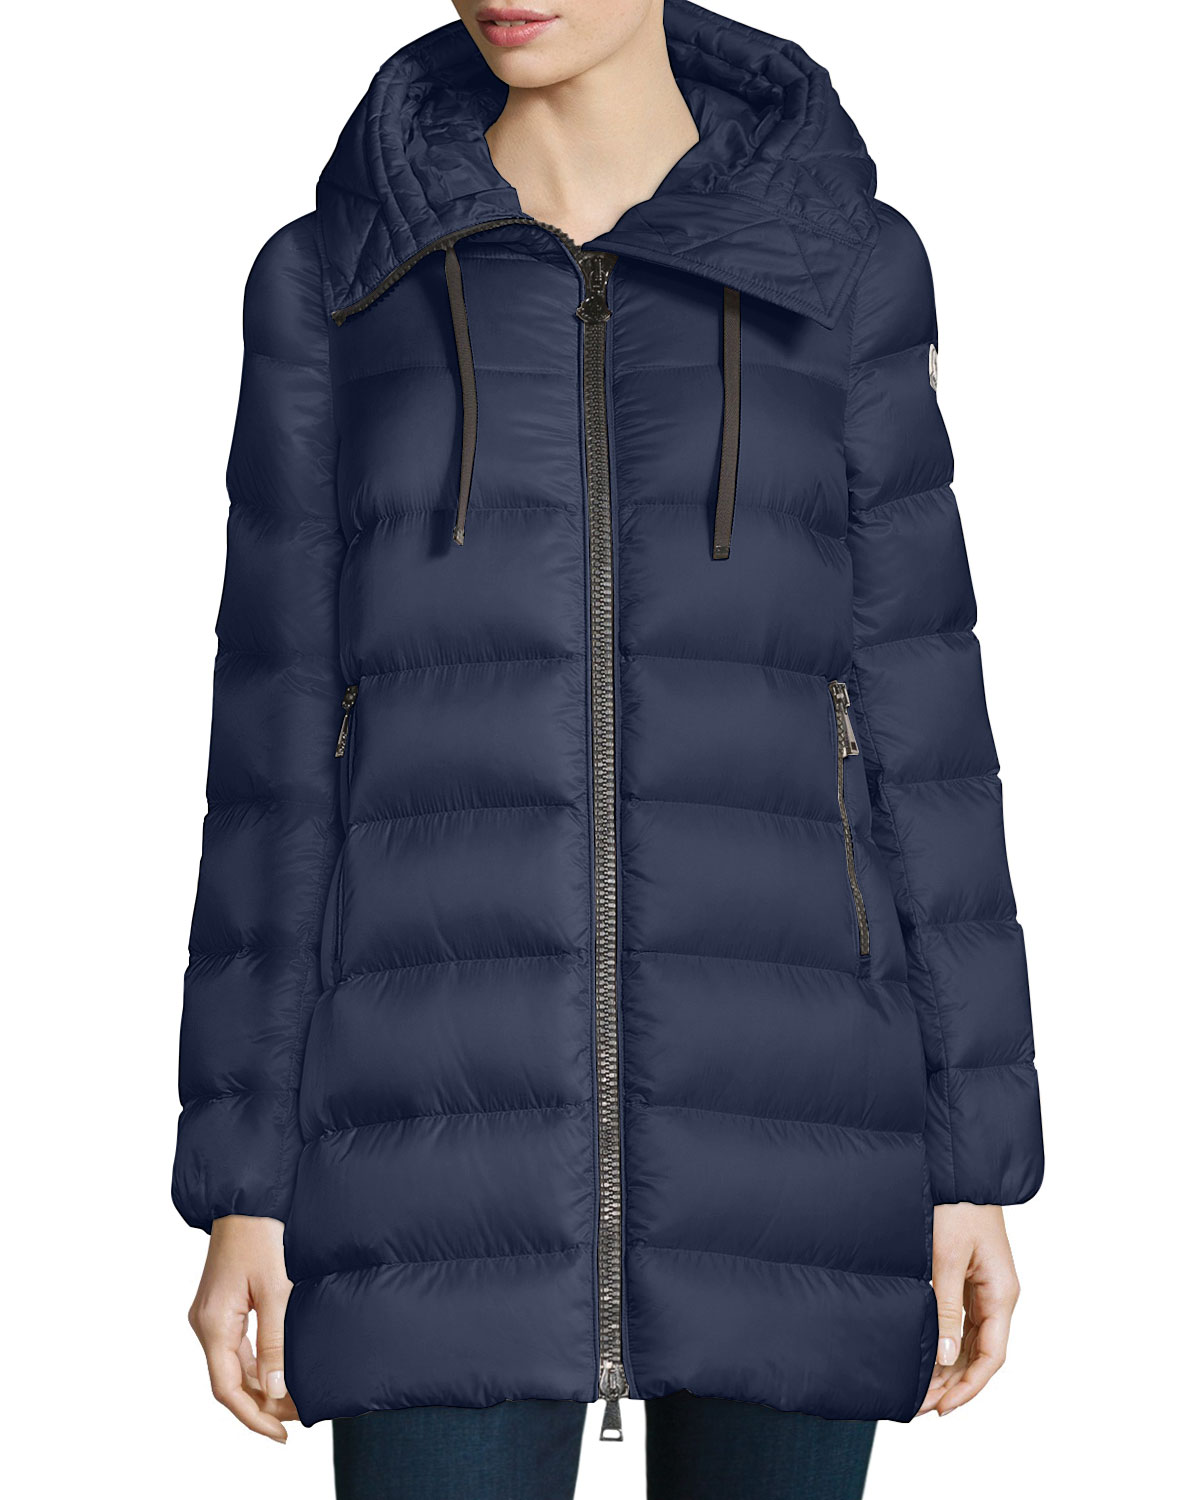 Google for columbia online women sale lightweight jackets quilted for sleeves companies